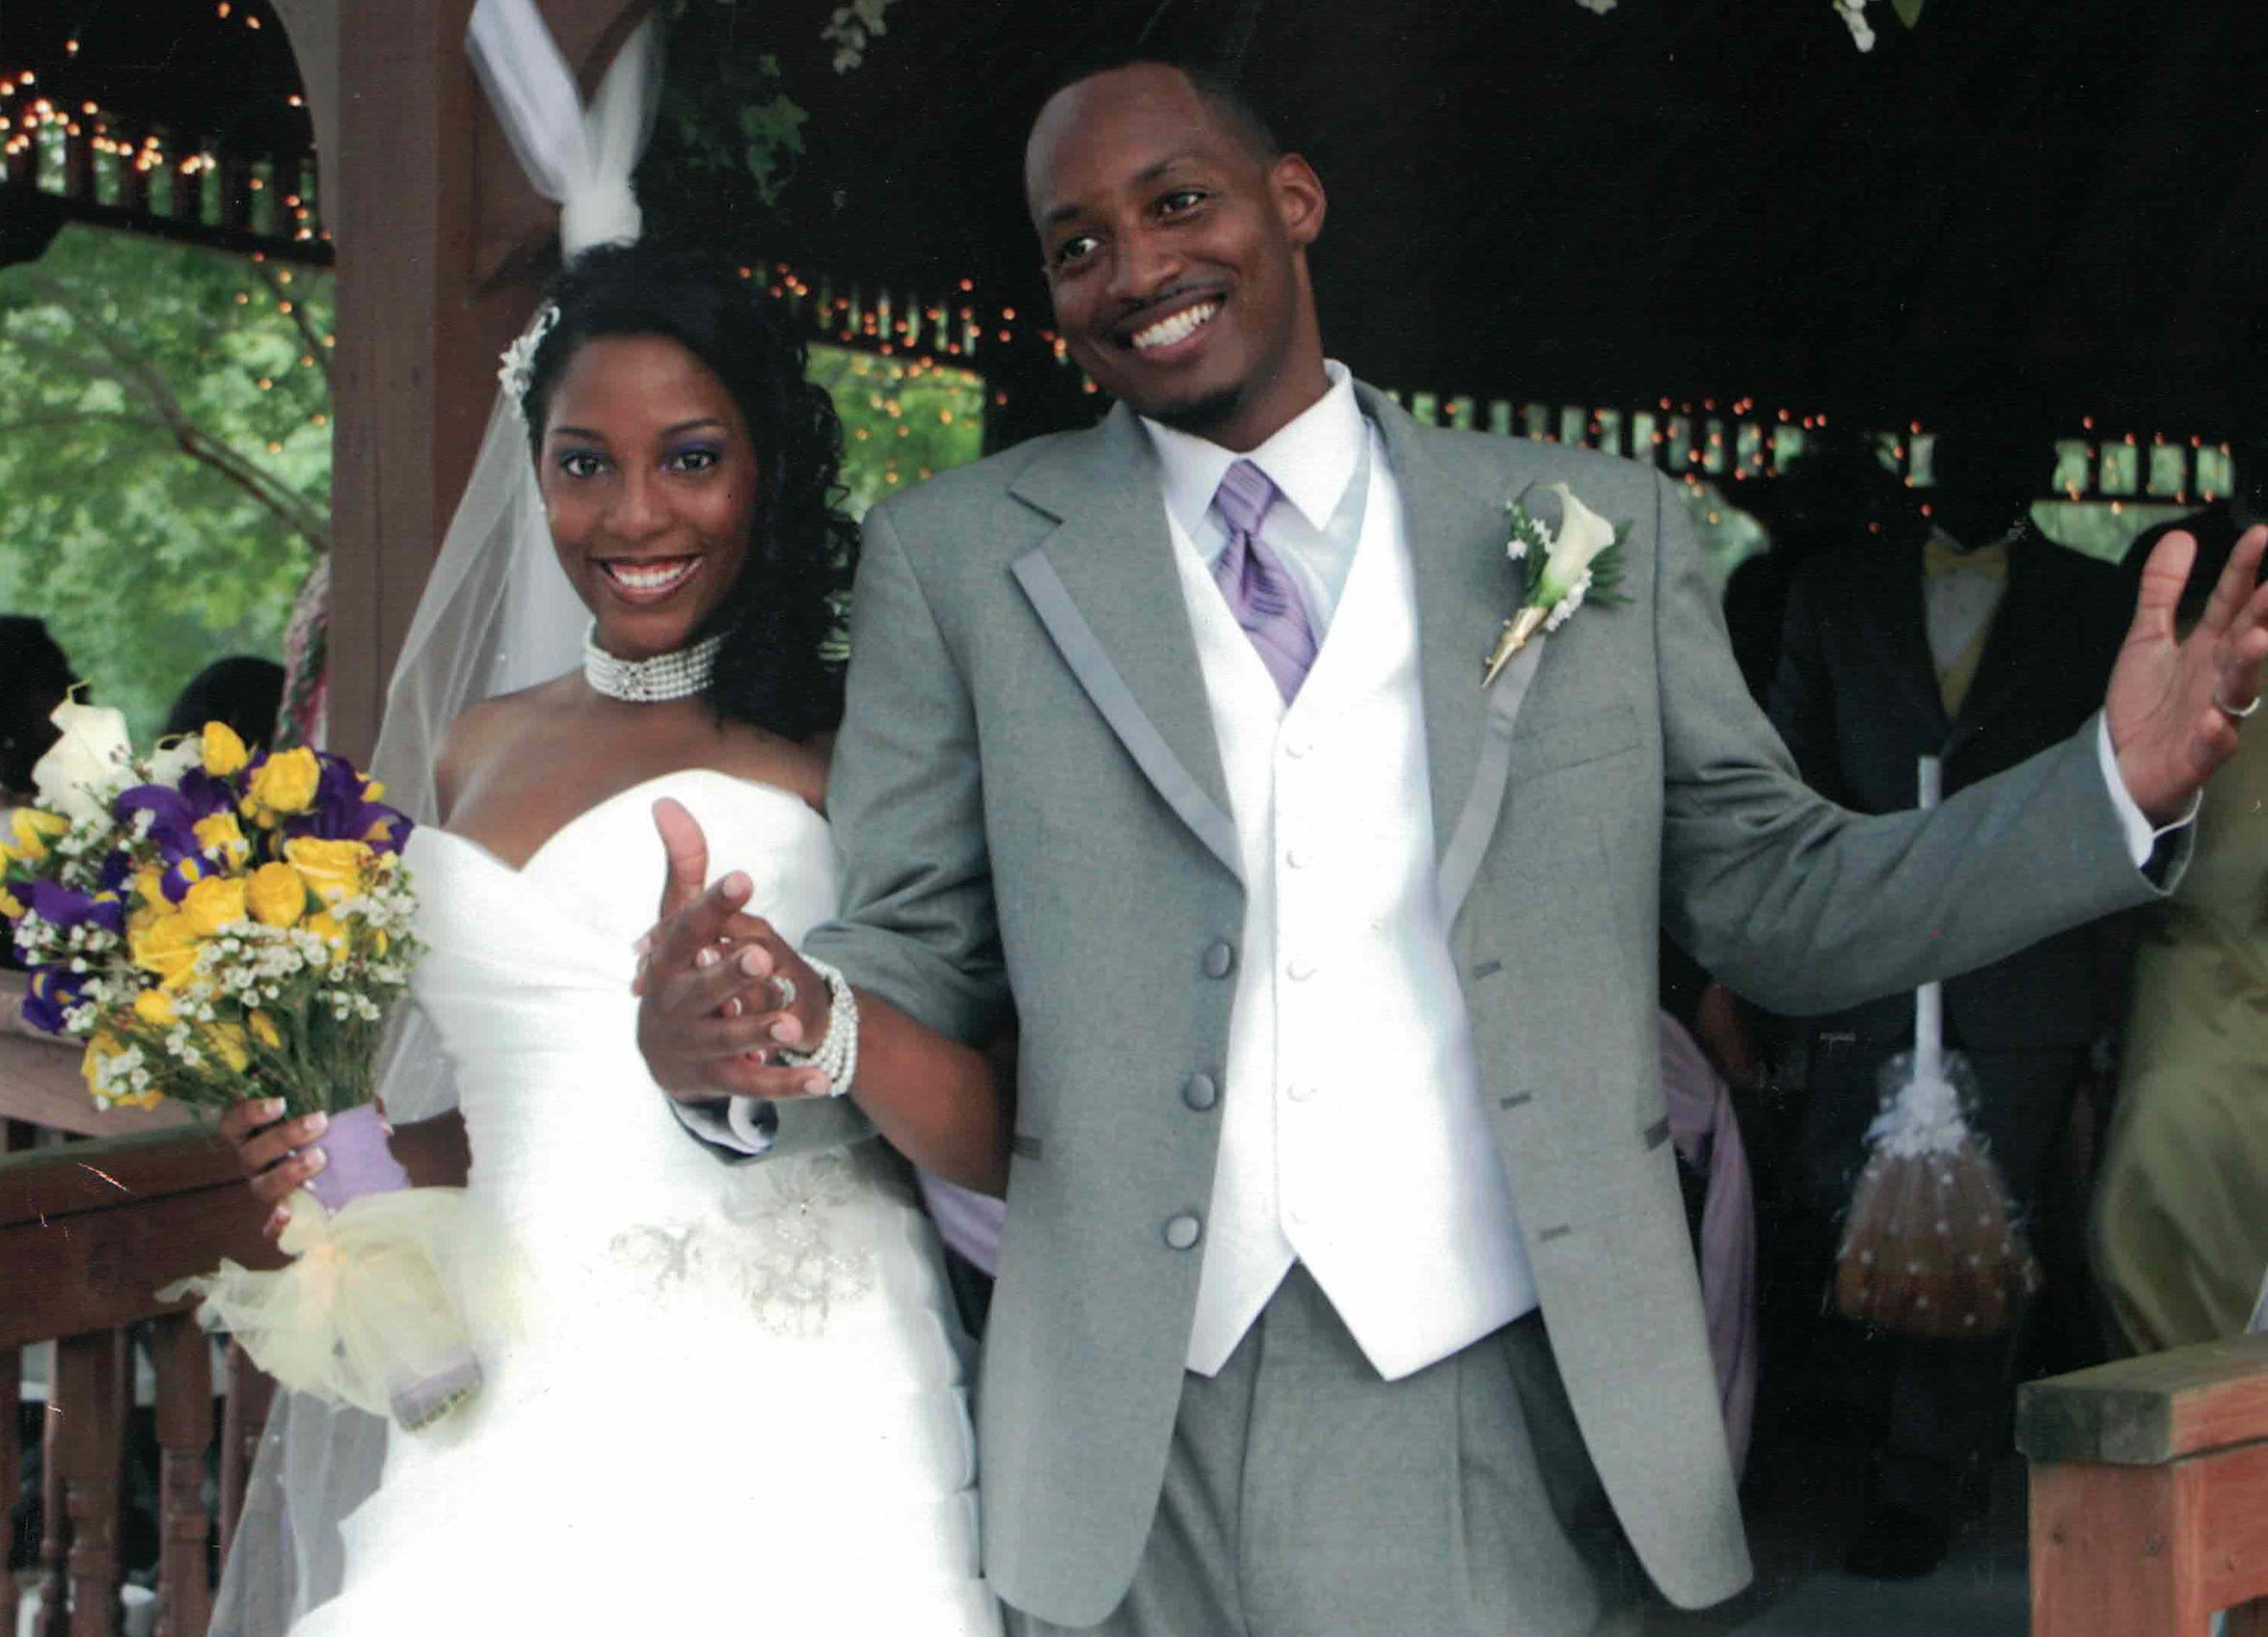 Dr. Channing Wells, O.D. with her late husband Josie Wells, Sr. after exchanging vows on their wedding day.